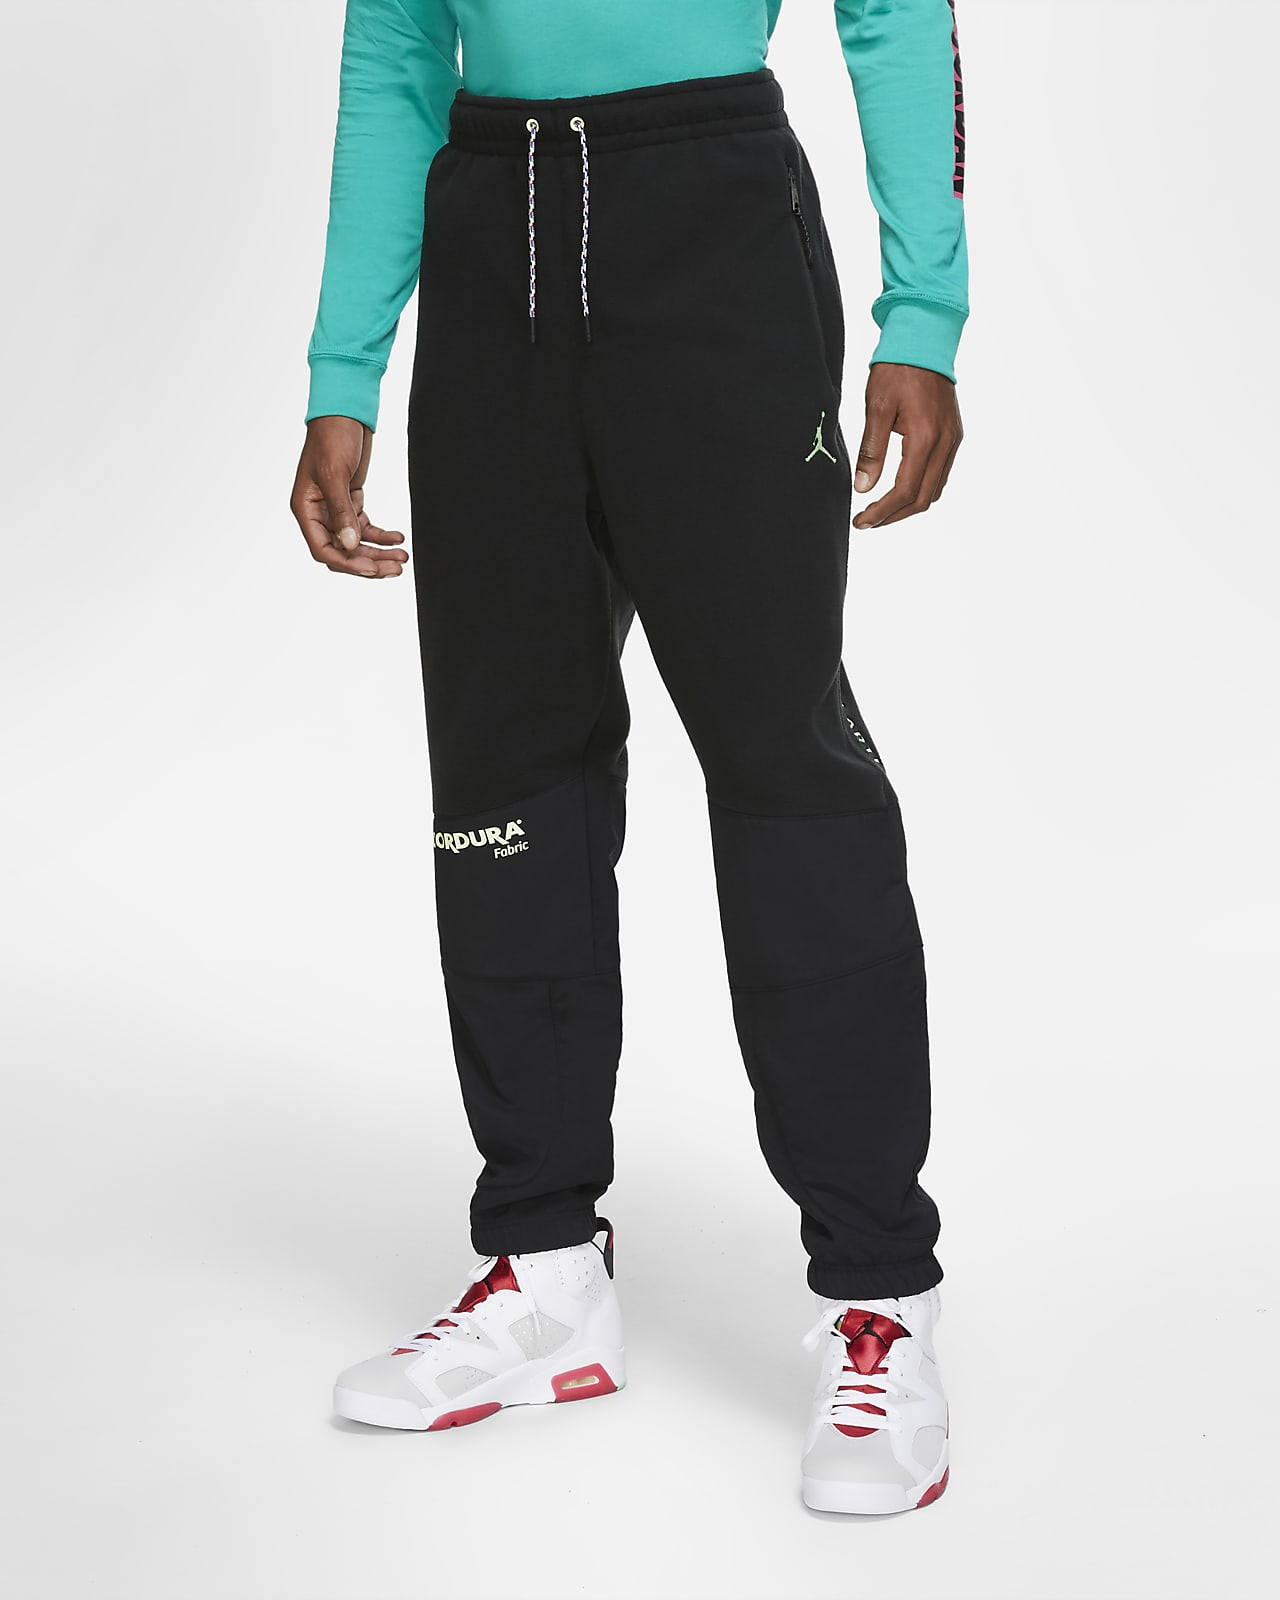 Jordan Winter Utility Pantalons - Home